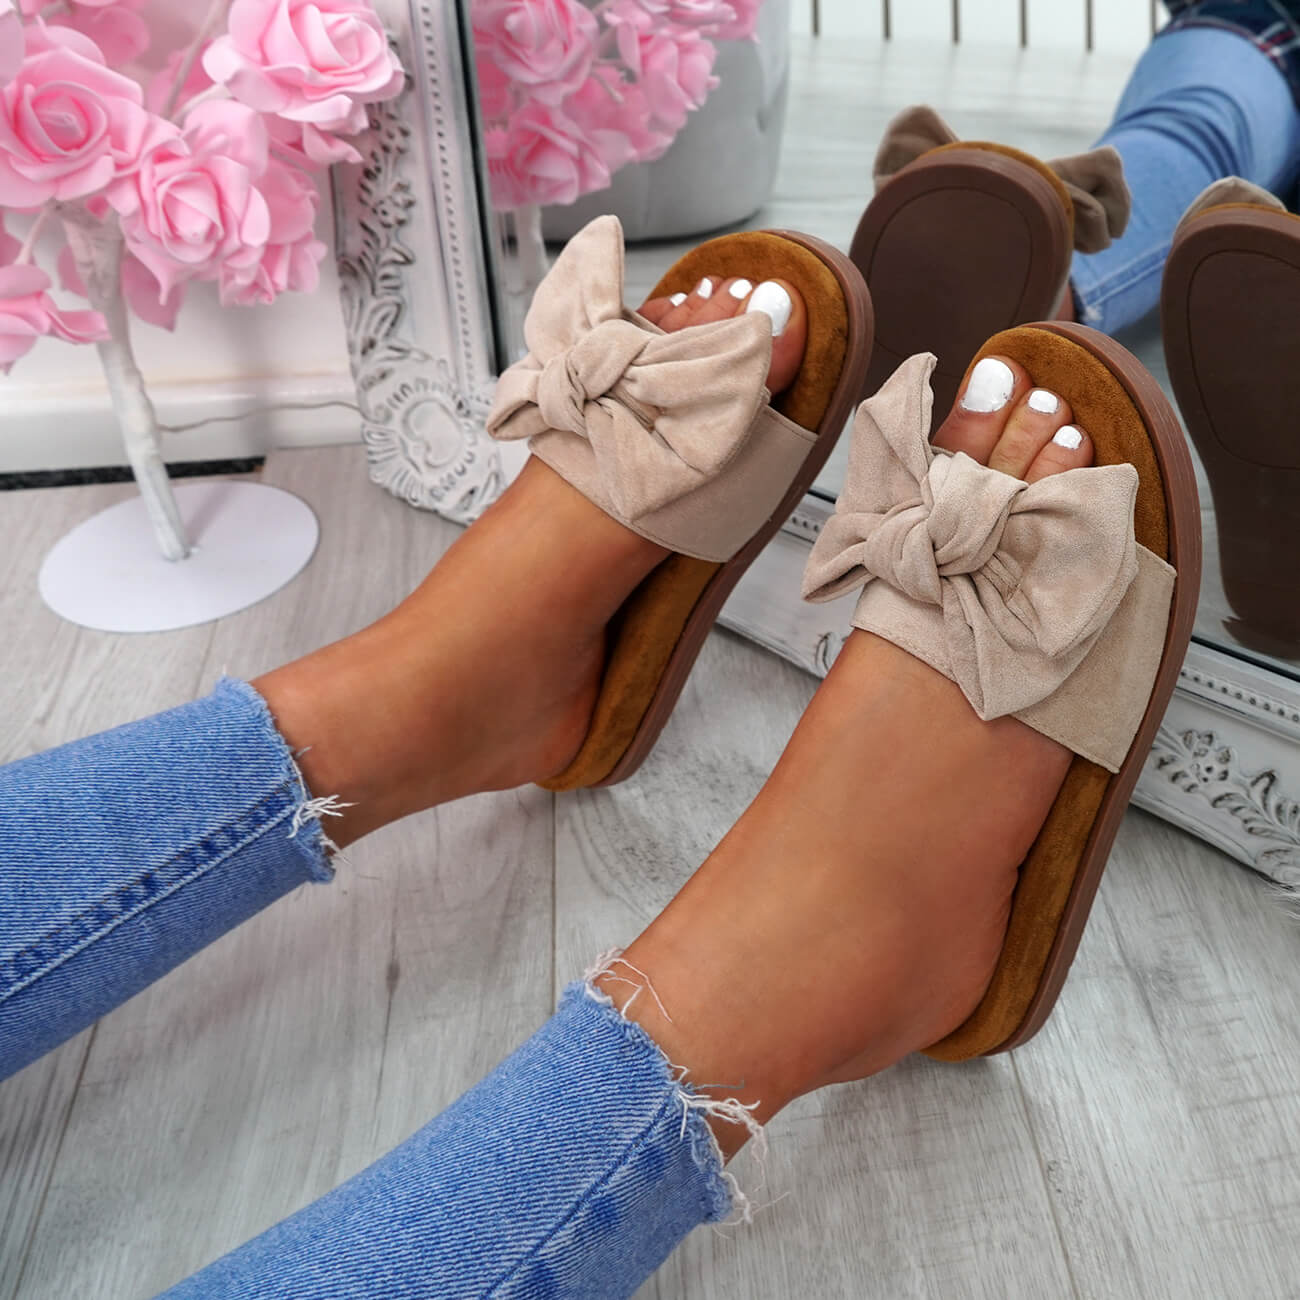 WOMENS-LADIES-FLAT-SANDALS-FRONT-BOW-COMFY-SUMMER-CASUAL-HOLIDAY-SHOES-SIZE-UK thumbnail 10